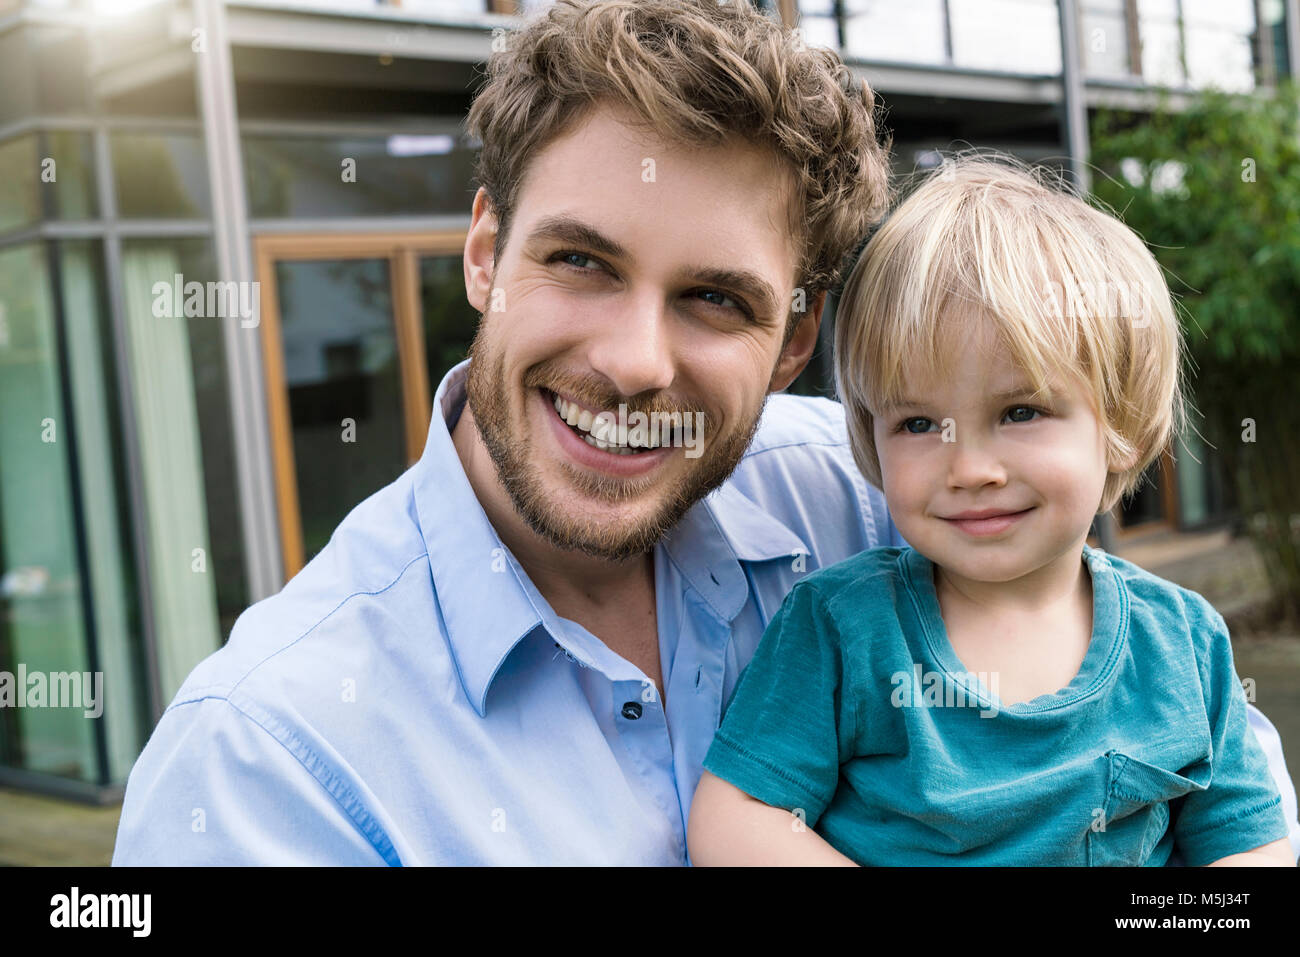 Portrait of smiling father with son in front of their home - Stock Image